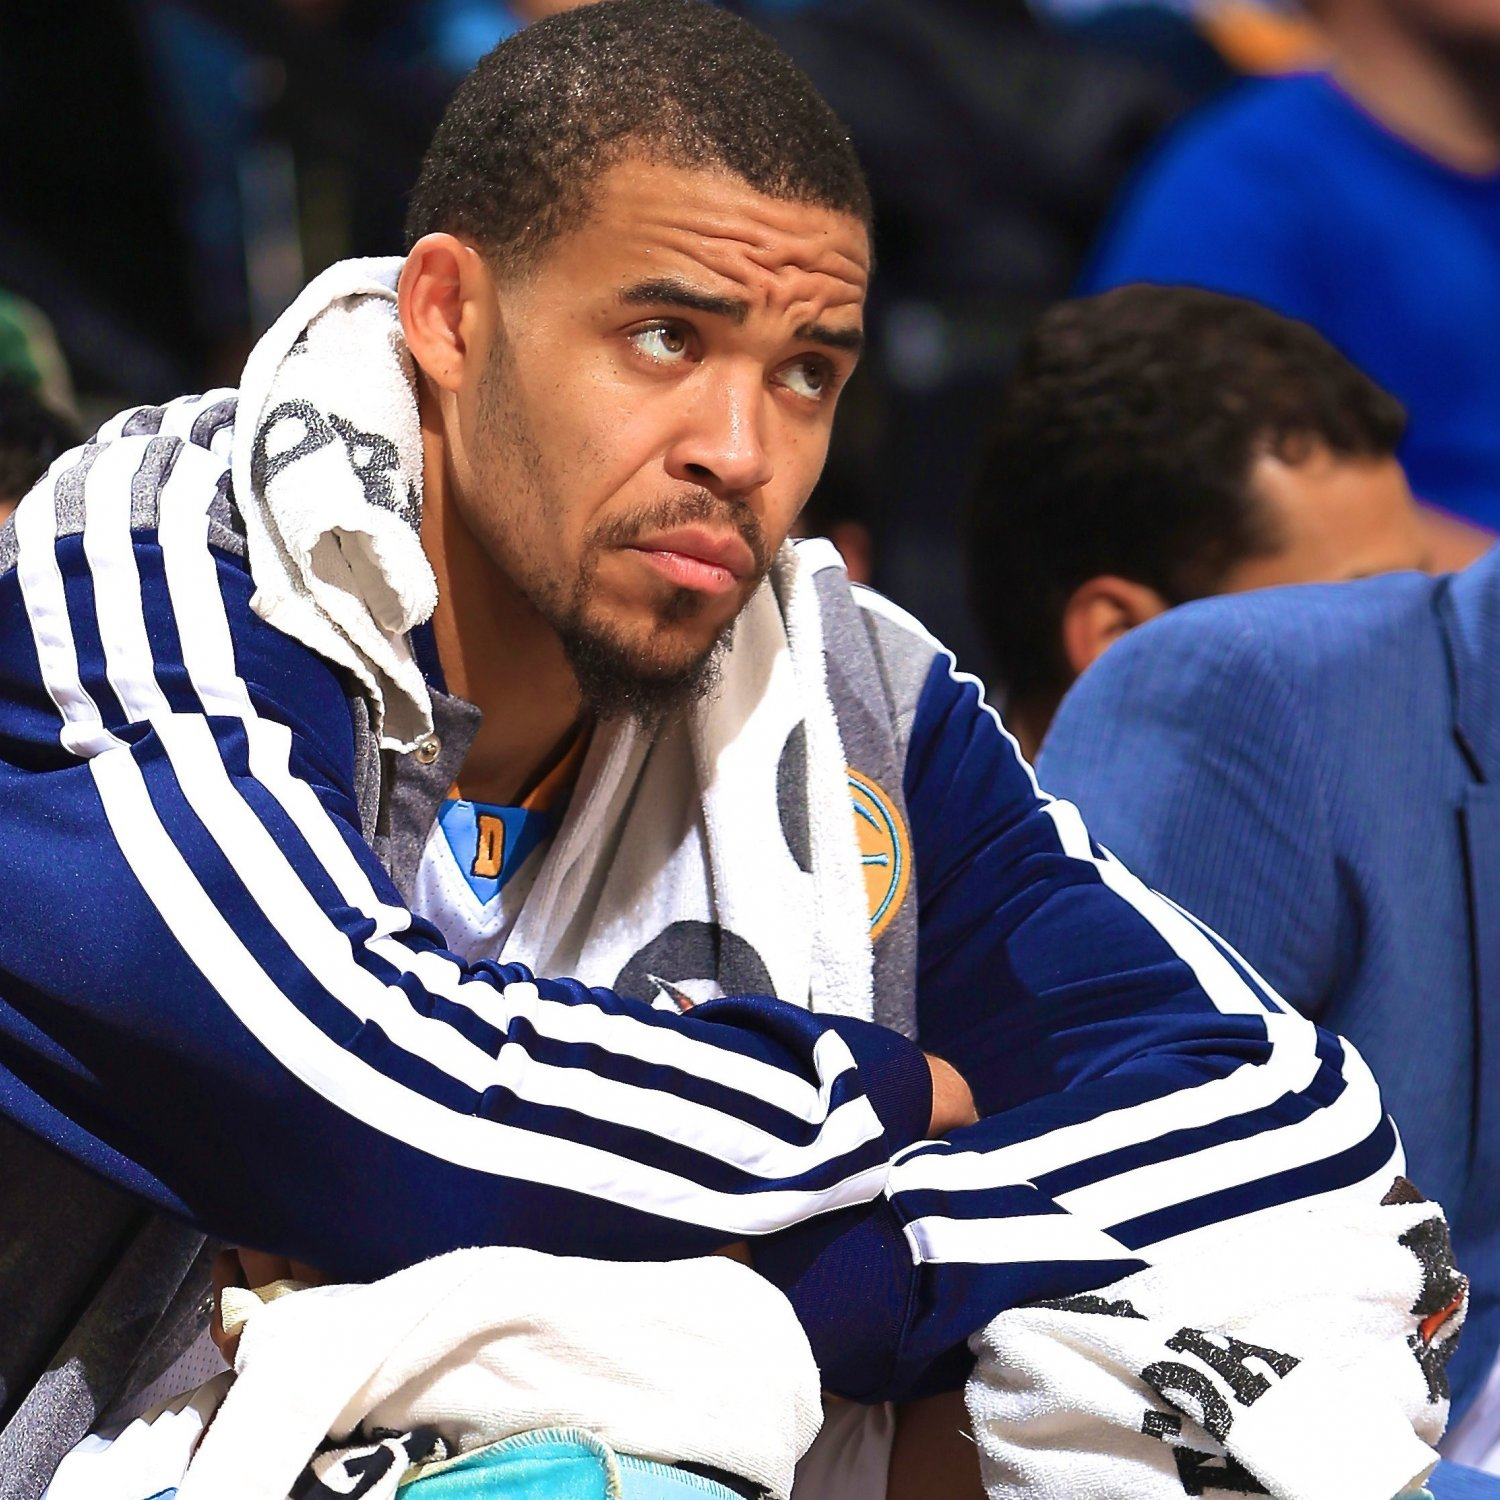 Nuggets Injury Report: JaVale McGee Injury: Updates On Nuggets Center's Leg And